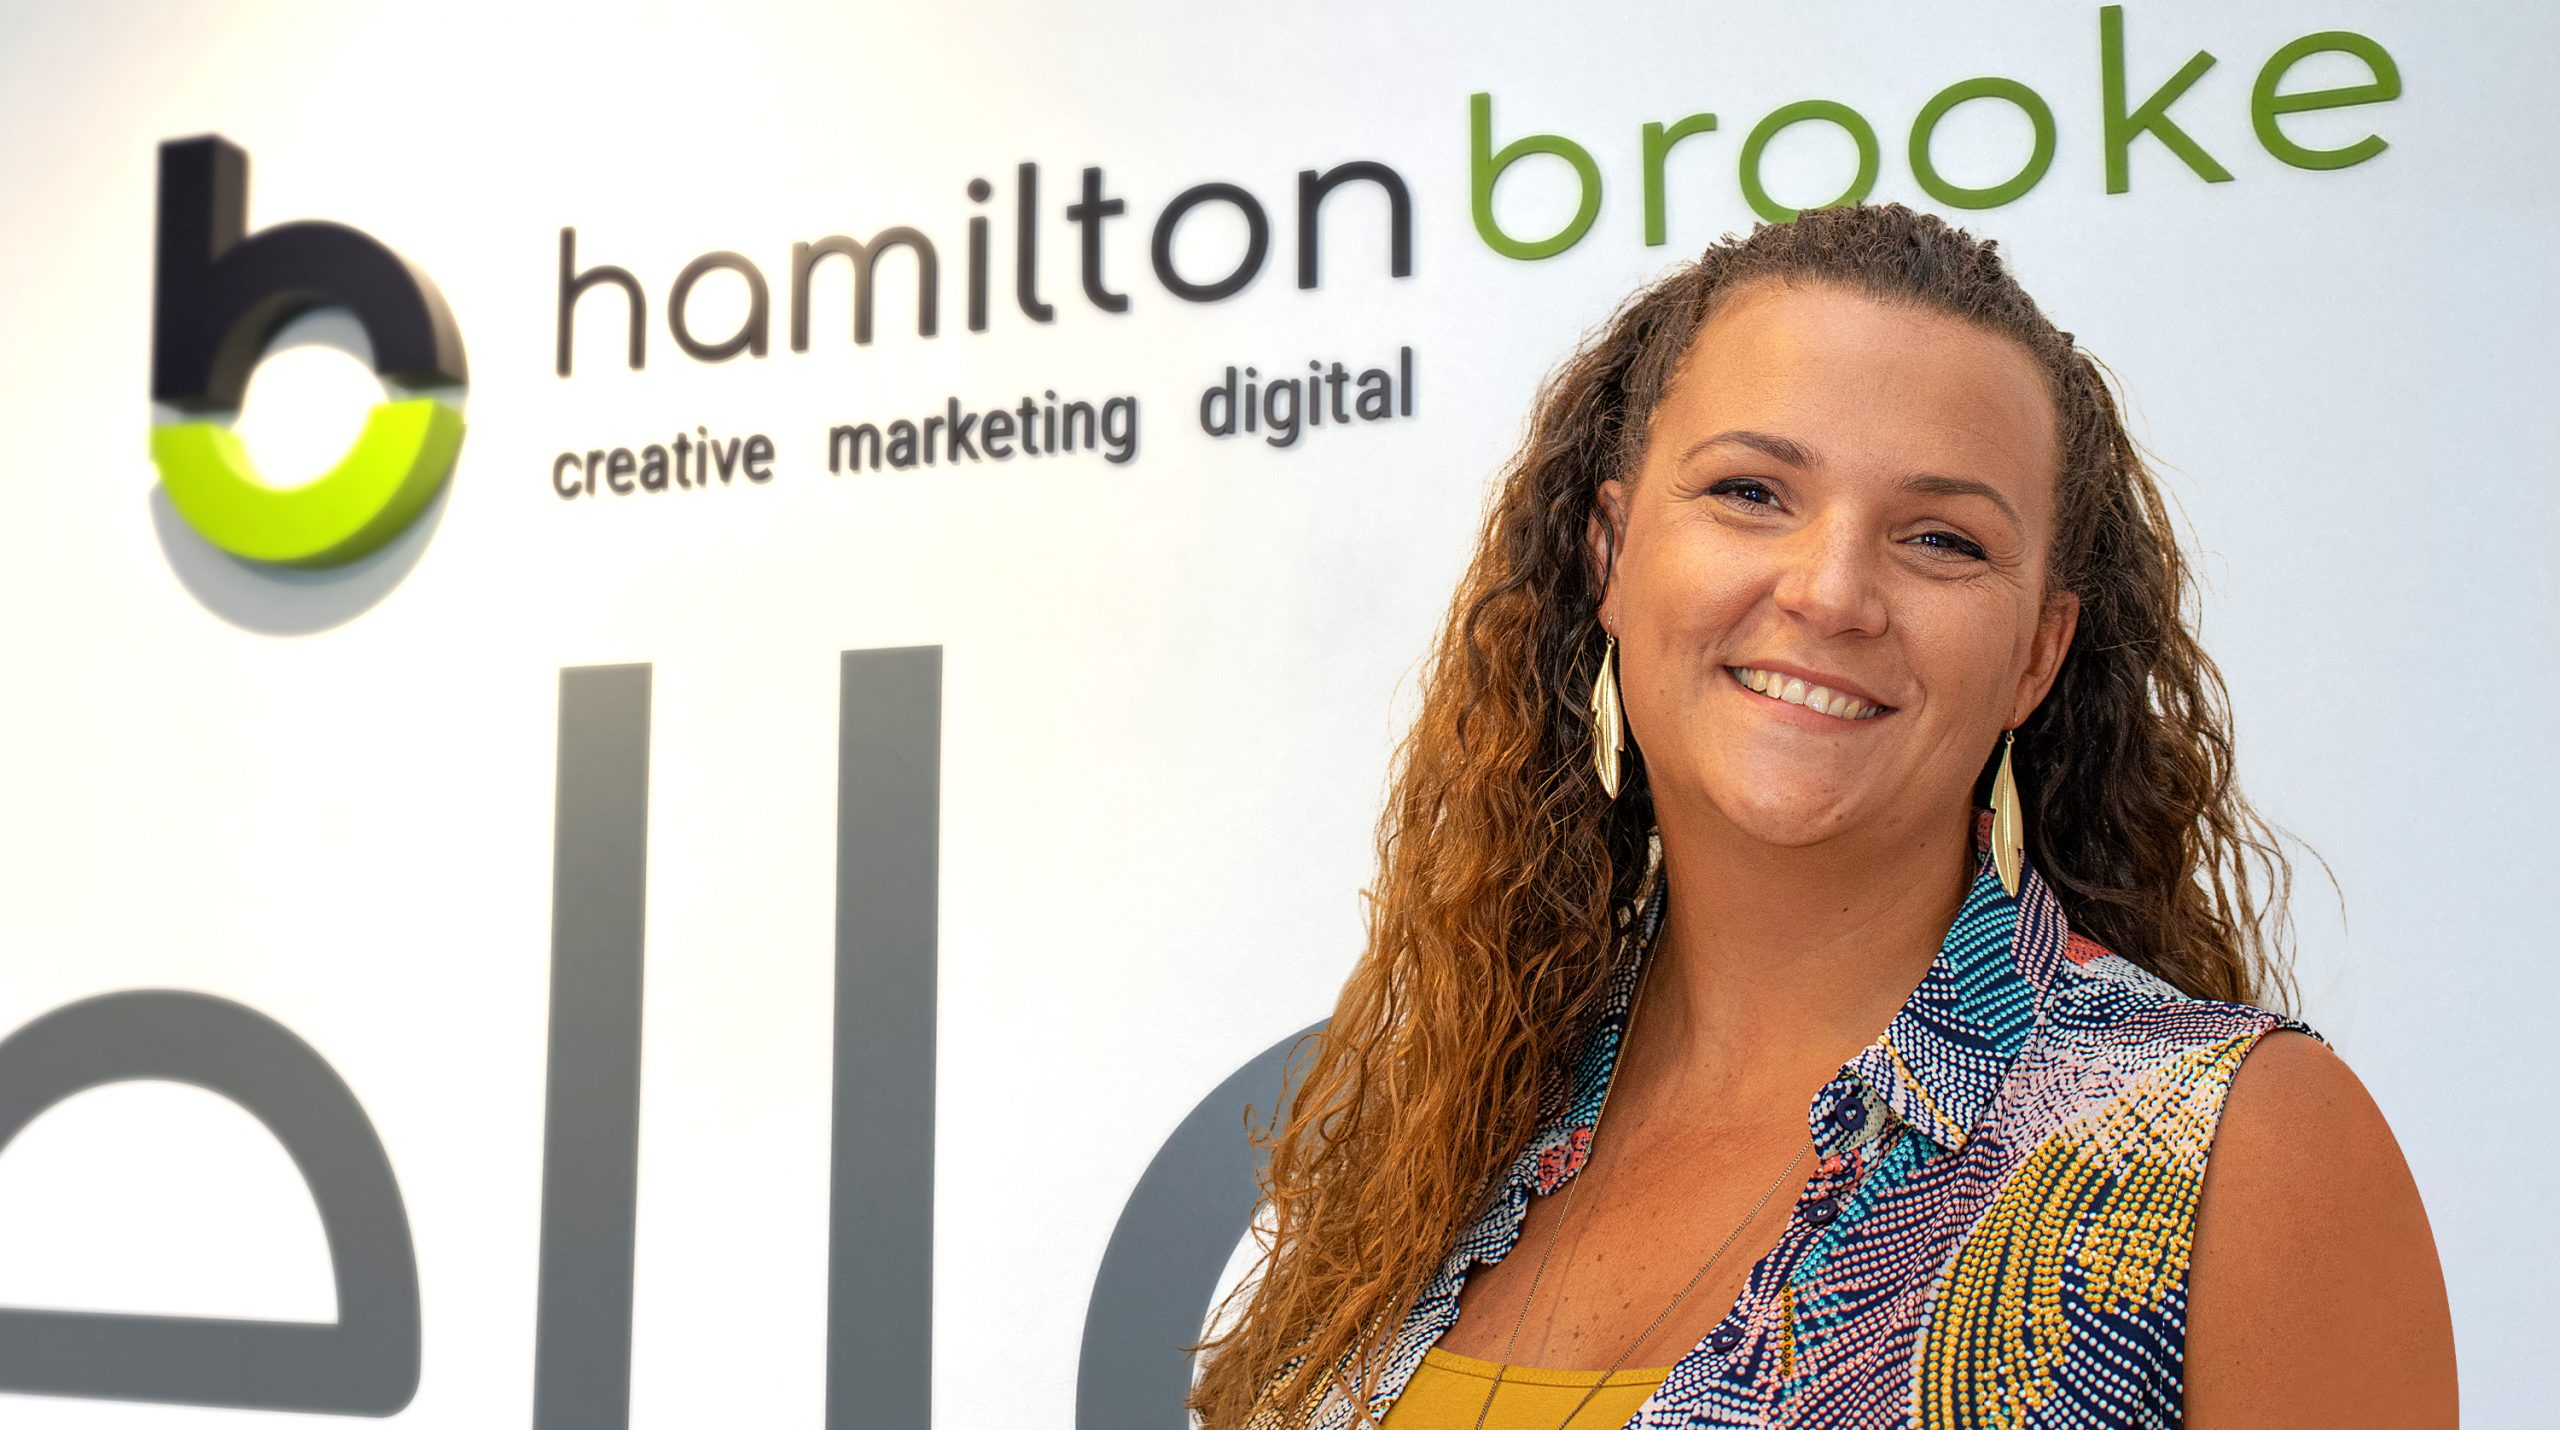 Natalie re-joins the HB team